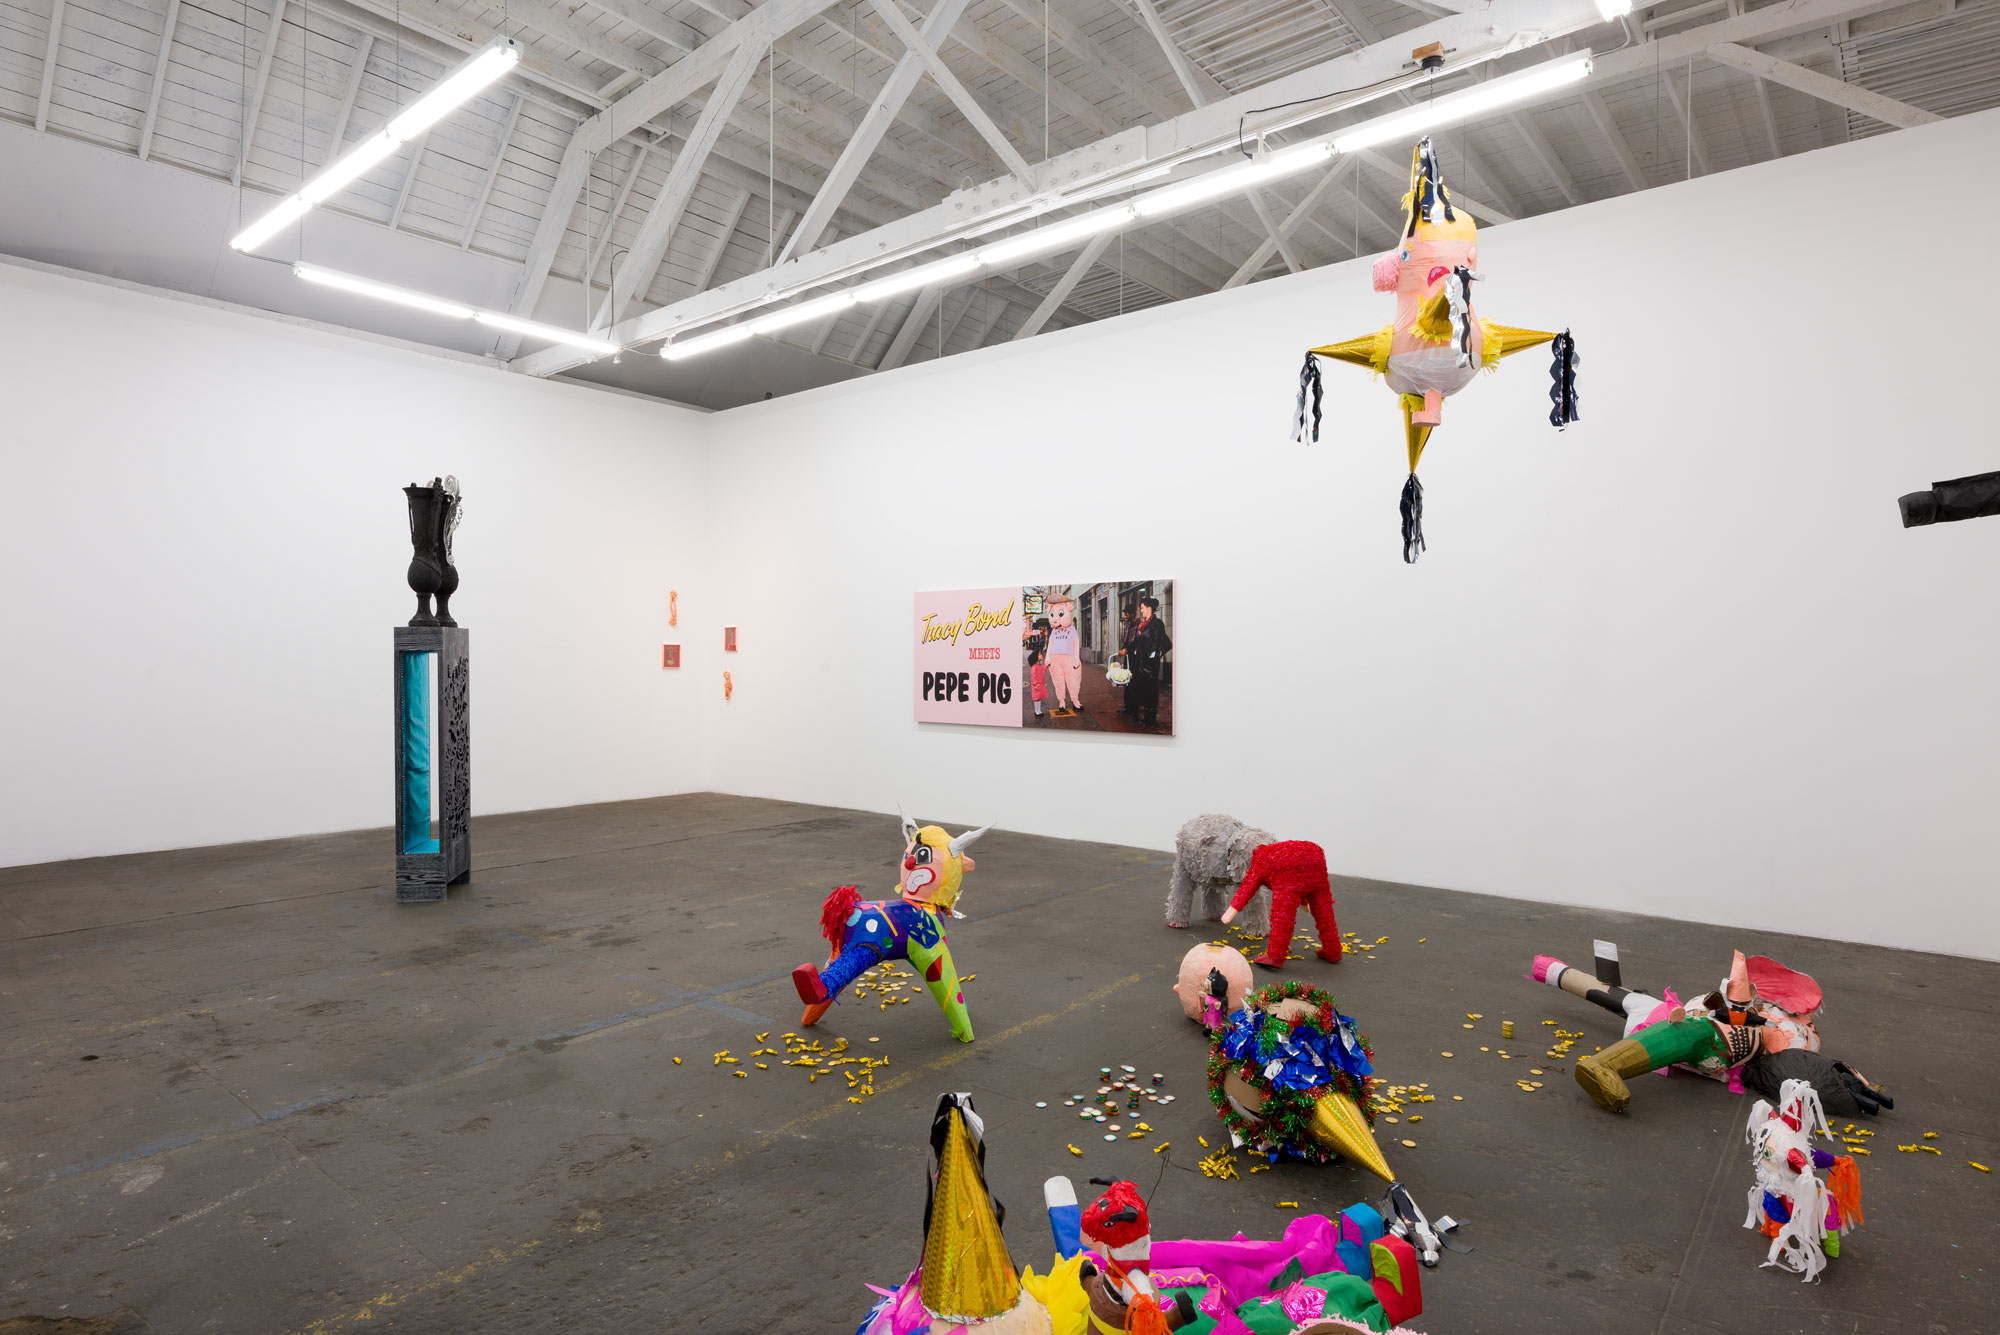 COME TOGETHER  KAREN LOFGREN, KEN LUM, JOEL OTTERSON, RUBÉN ORTIZ TORRES JAN 06 - MAR 24, 2019